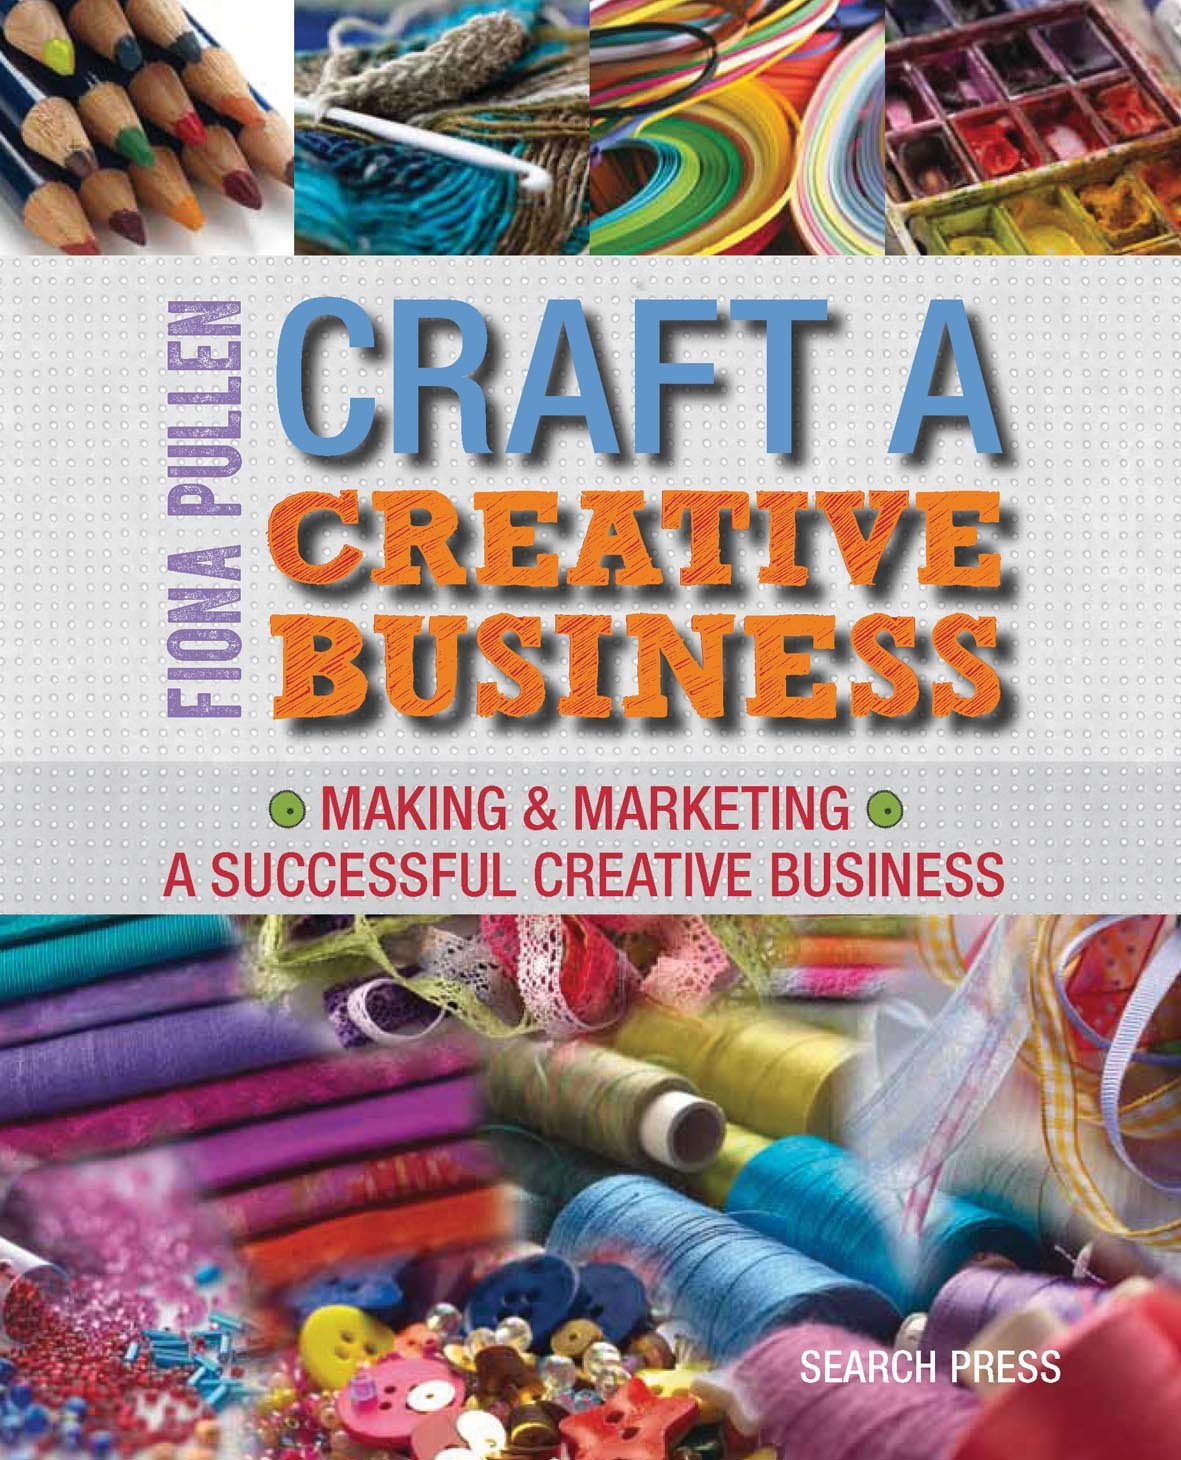 If You Have a Craft Business You Need This Book